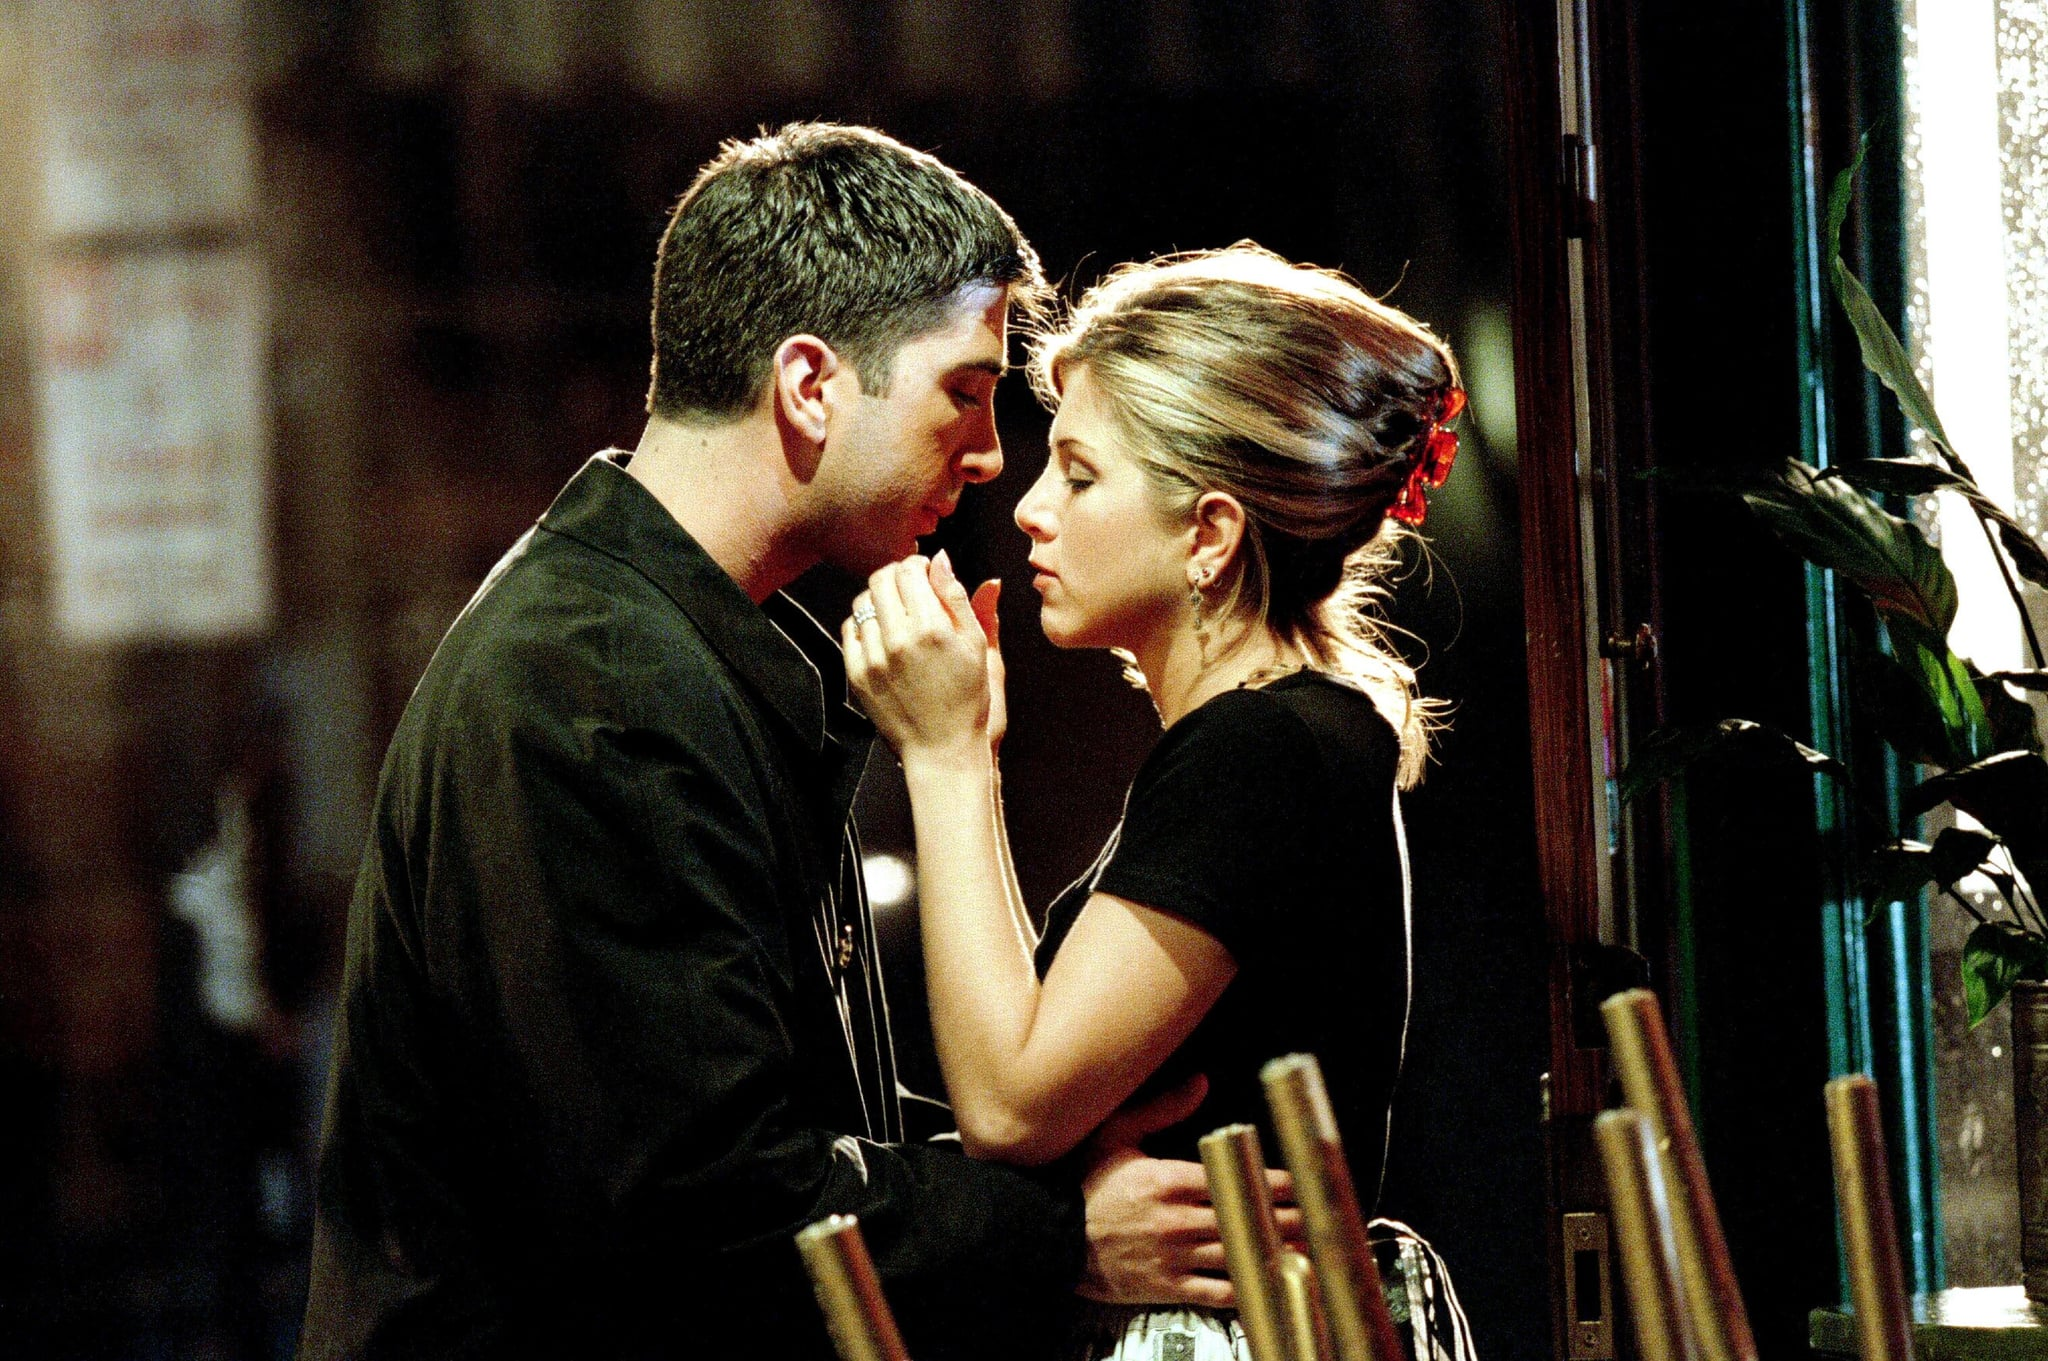 FRIENDS, from left: David Schwimmer, Jennifer Aniston, 'The One Where Ross Finds Out', (Season 2, ep. 207, aired Nov. 9, 1995), 1994-2004. photo: Robert Isenberg / Warner Bros. / Courtesy: Everett Collection